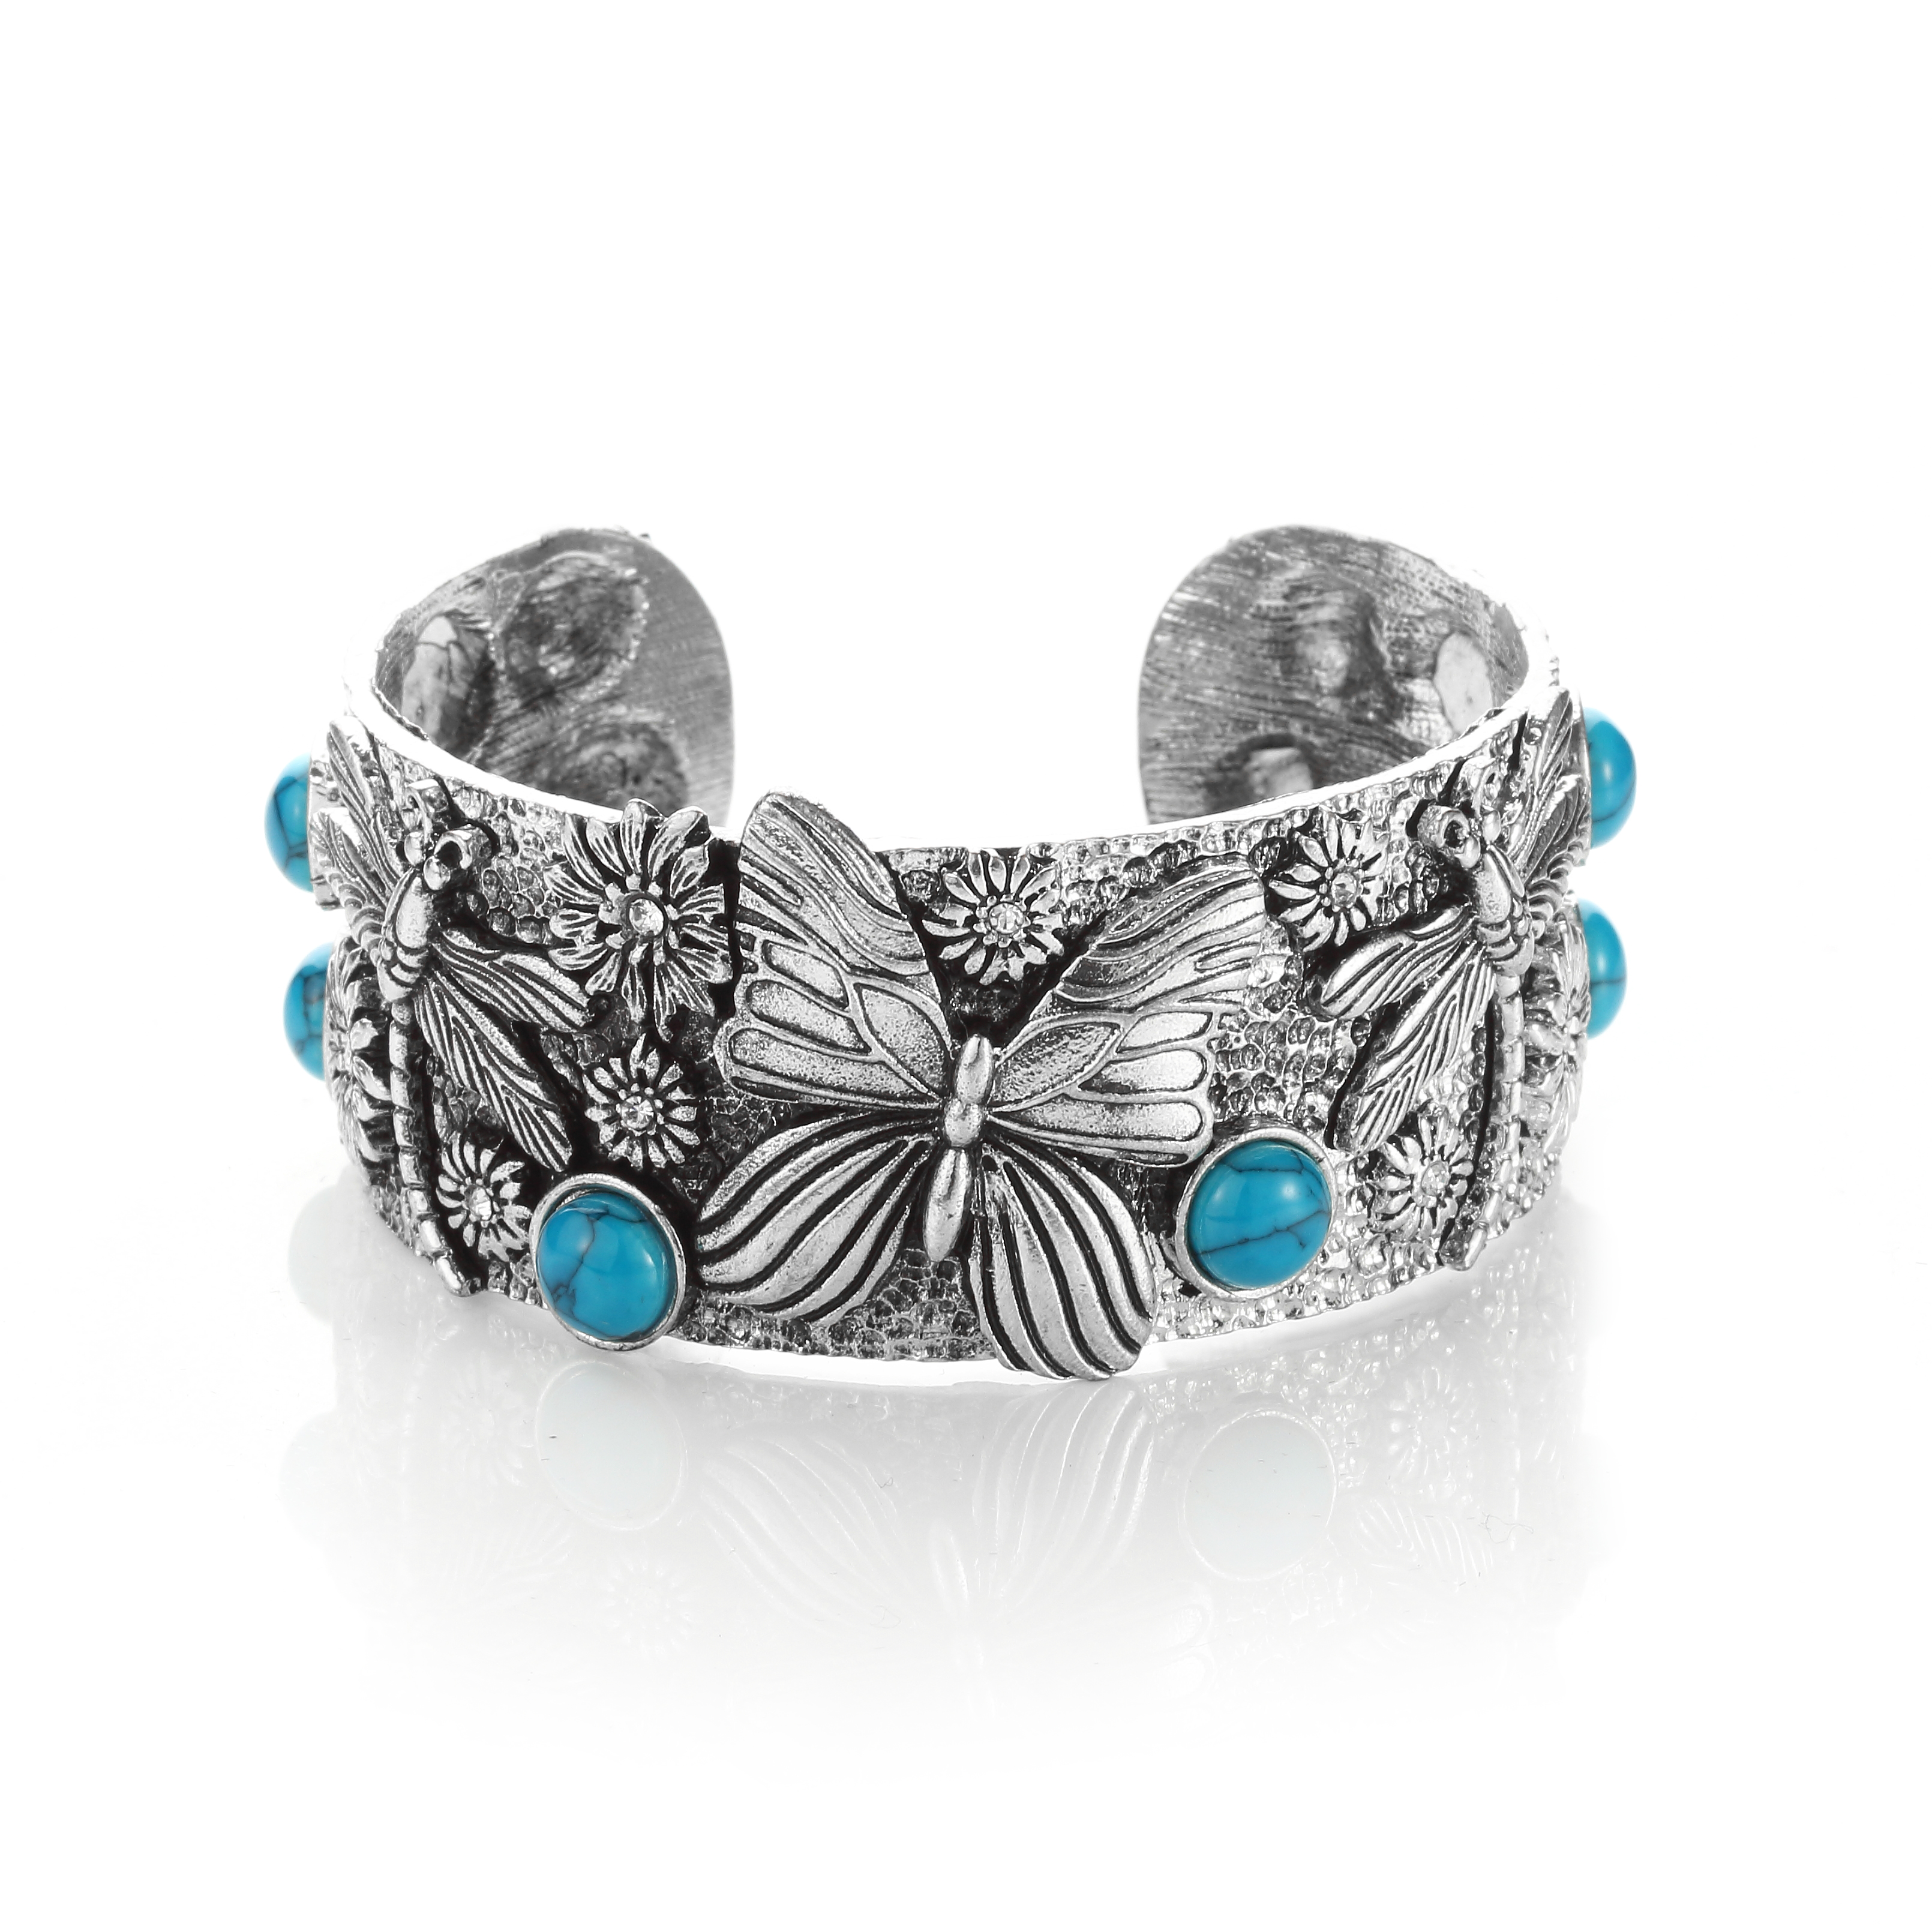 Imperial Carved Southwest Turquoise Cuff